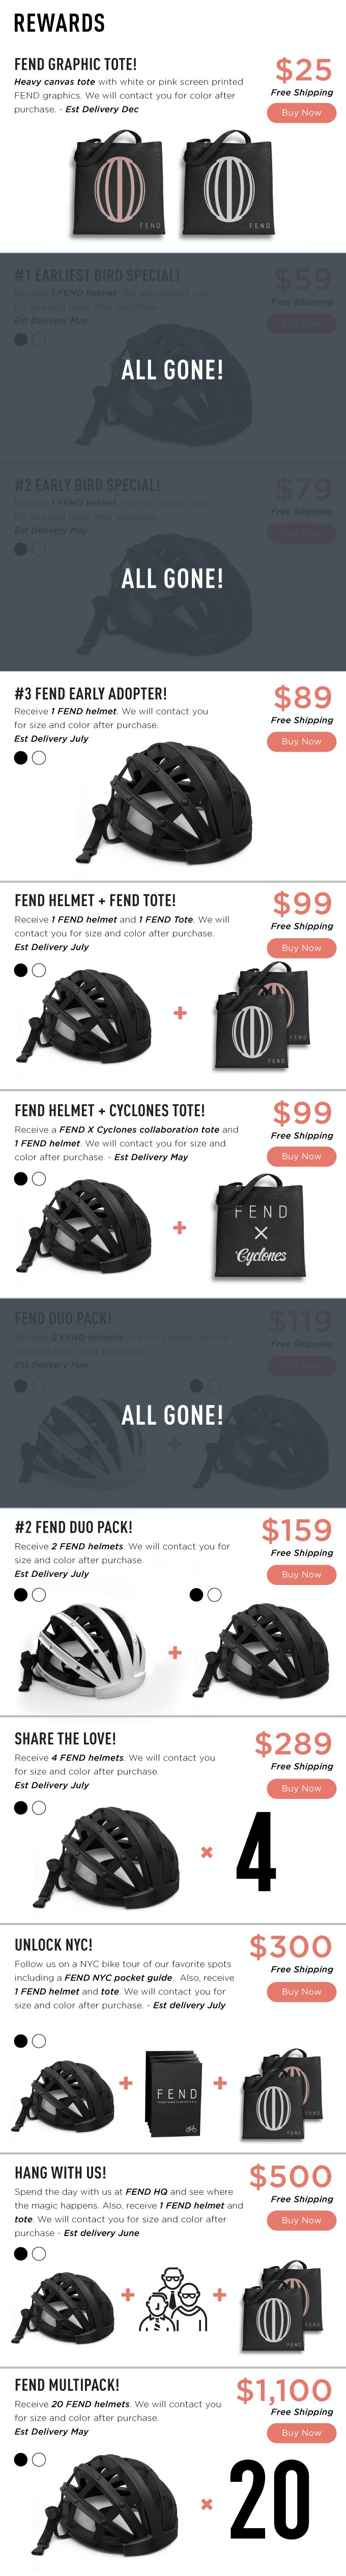 https://www.kickstarter.com/projects/fendhelmet/fend-the-collapsible-bicycle-helmet/pledge/new?clicked_reward=false&ref=nav_search